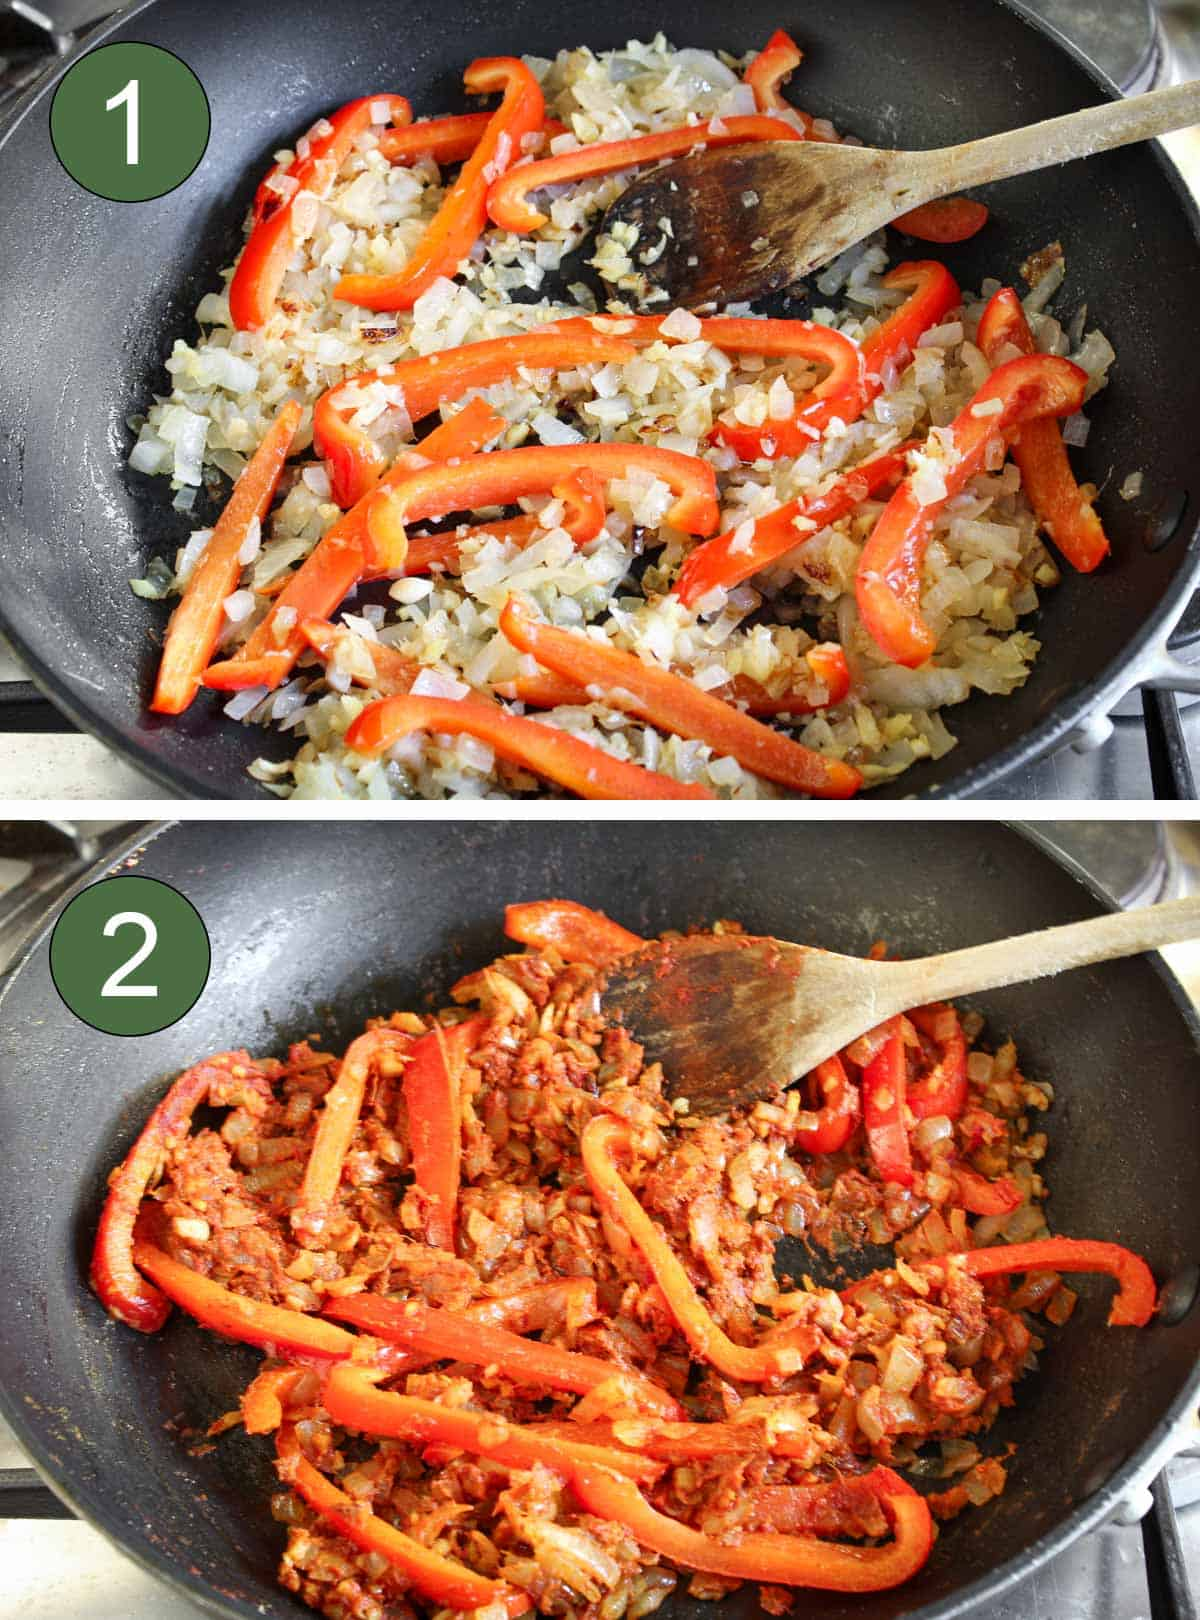 Process Shots Showing Fried Vegetables and Spices in Pan